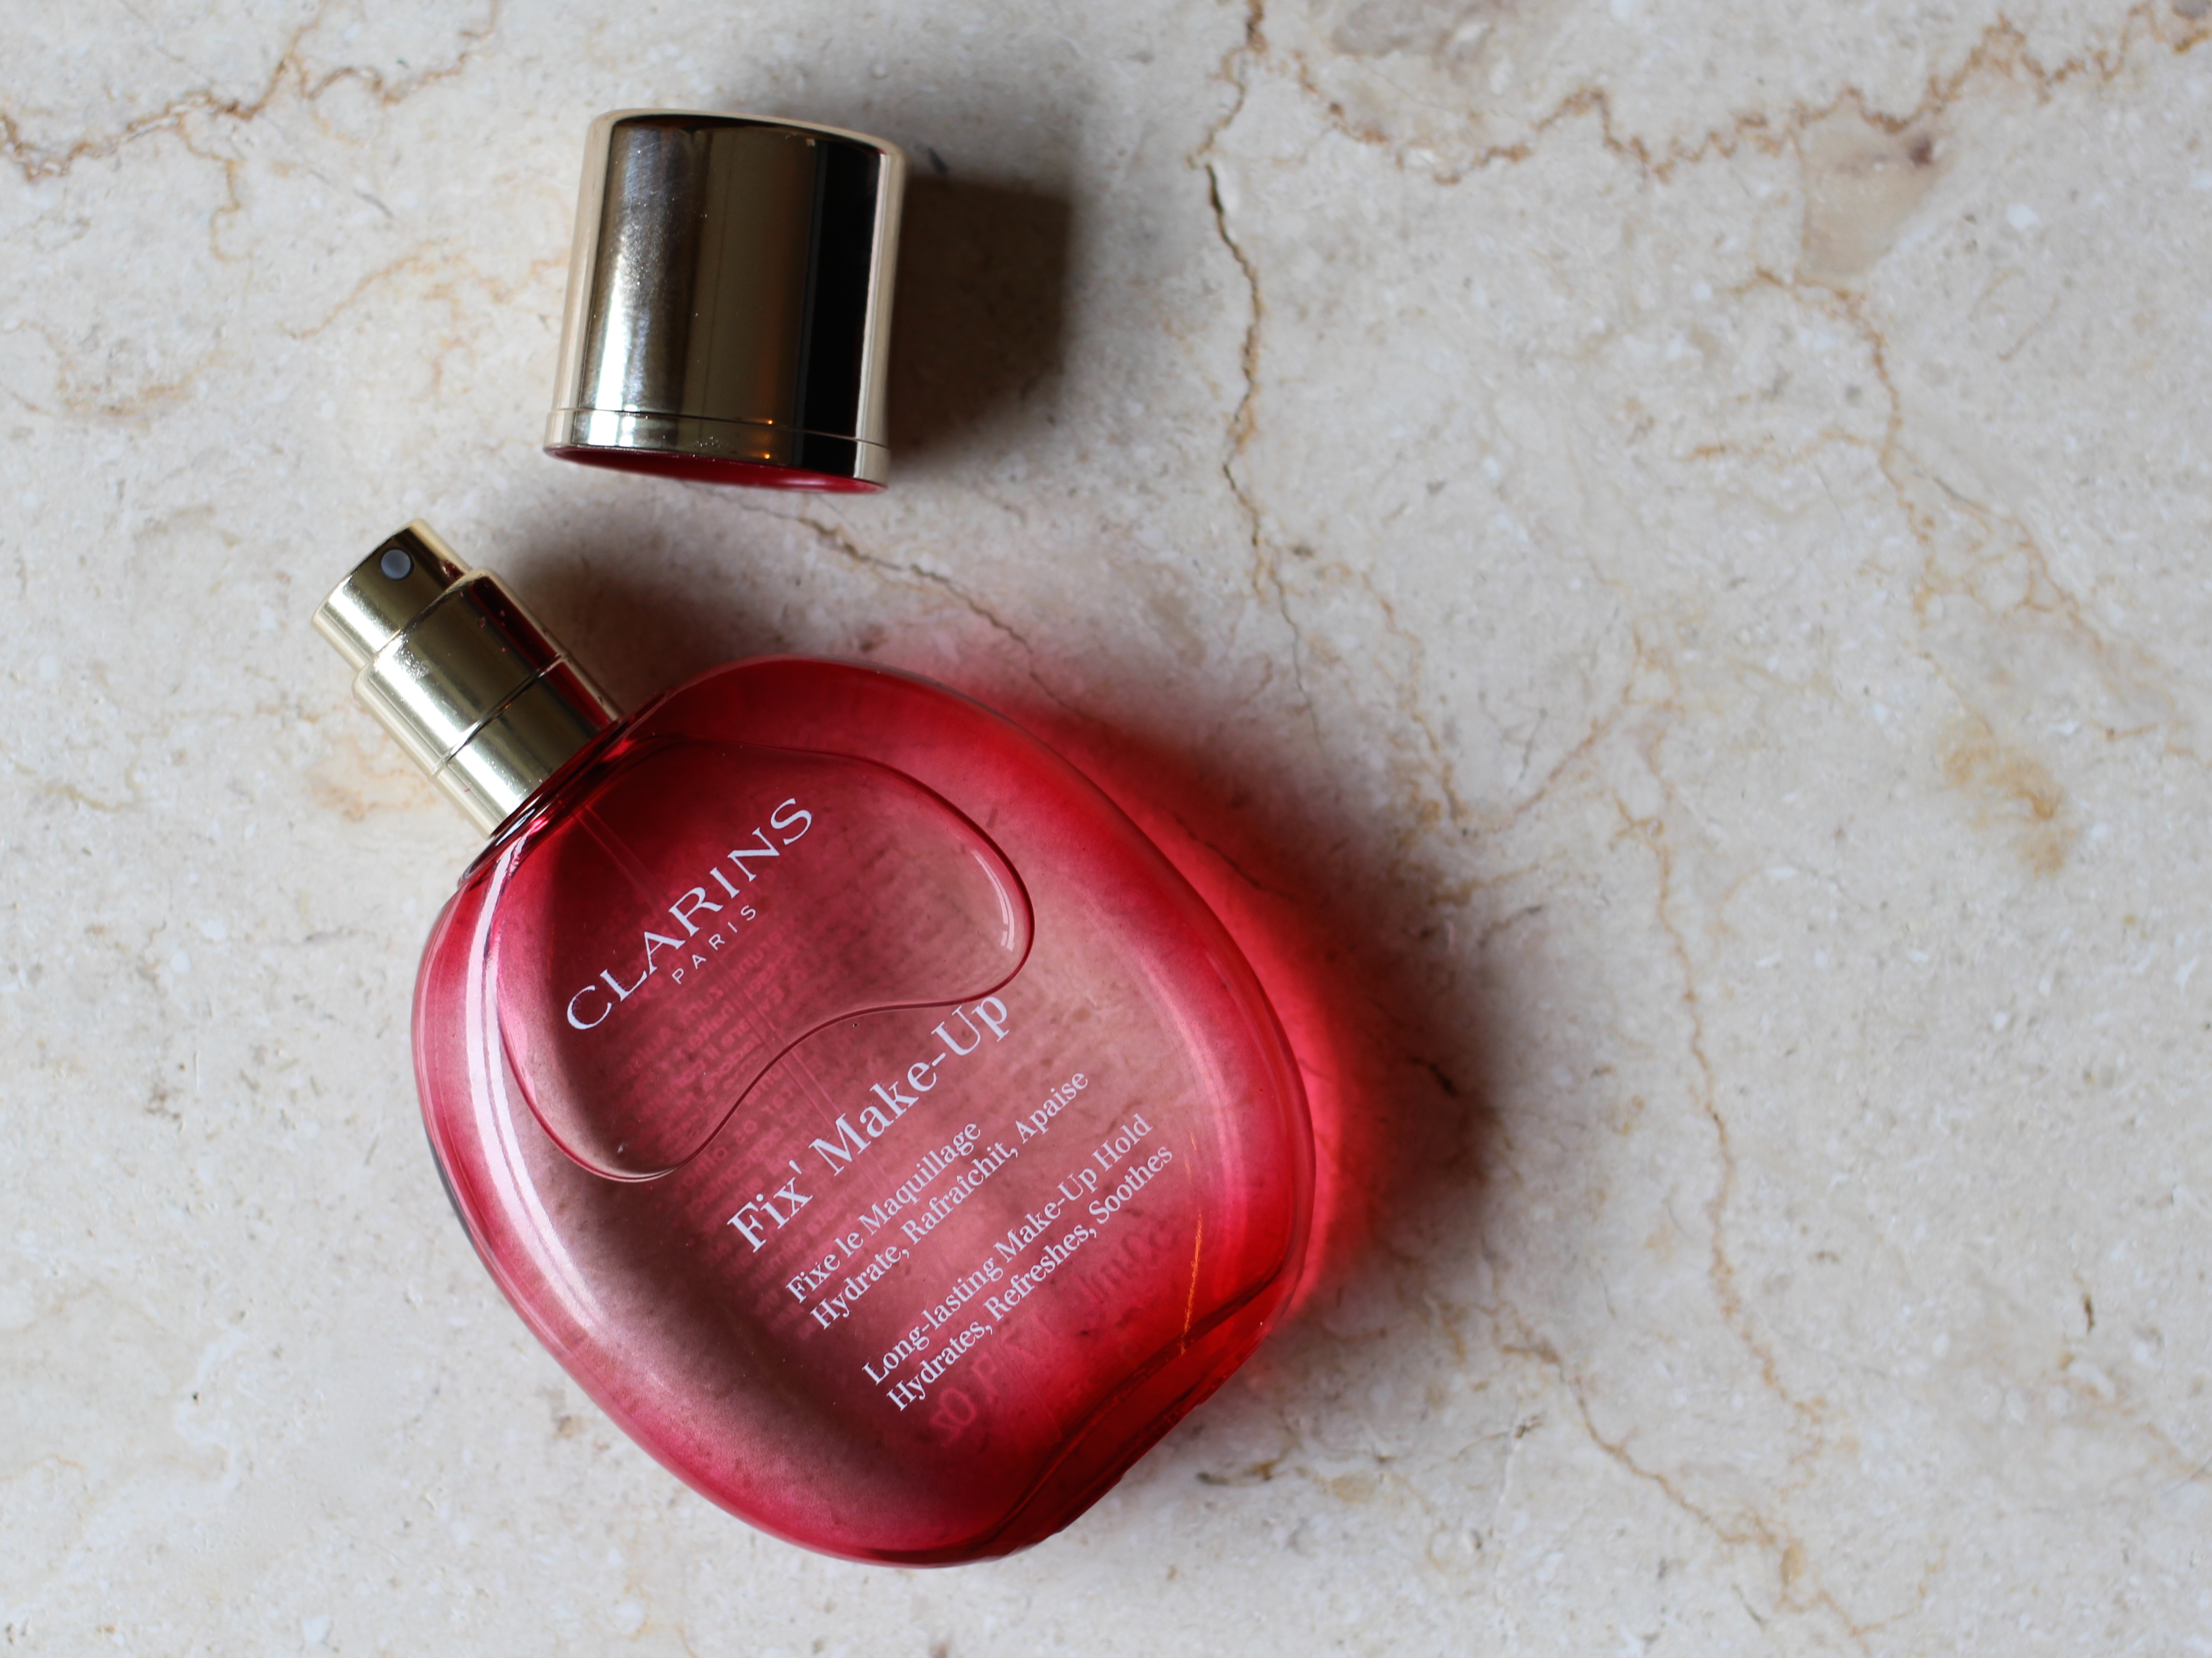 Clarins Fix' Make-Up New Formula Review